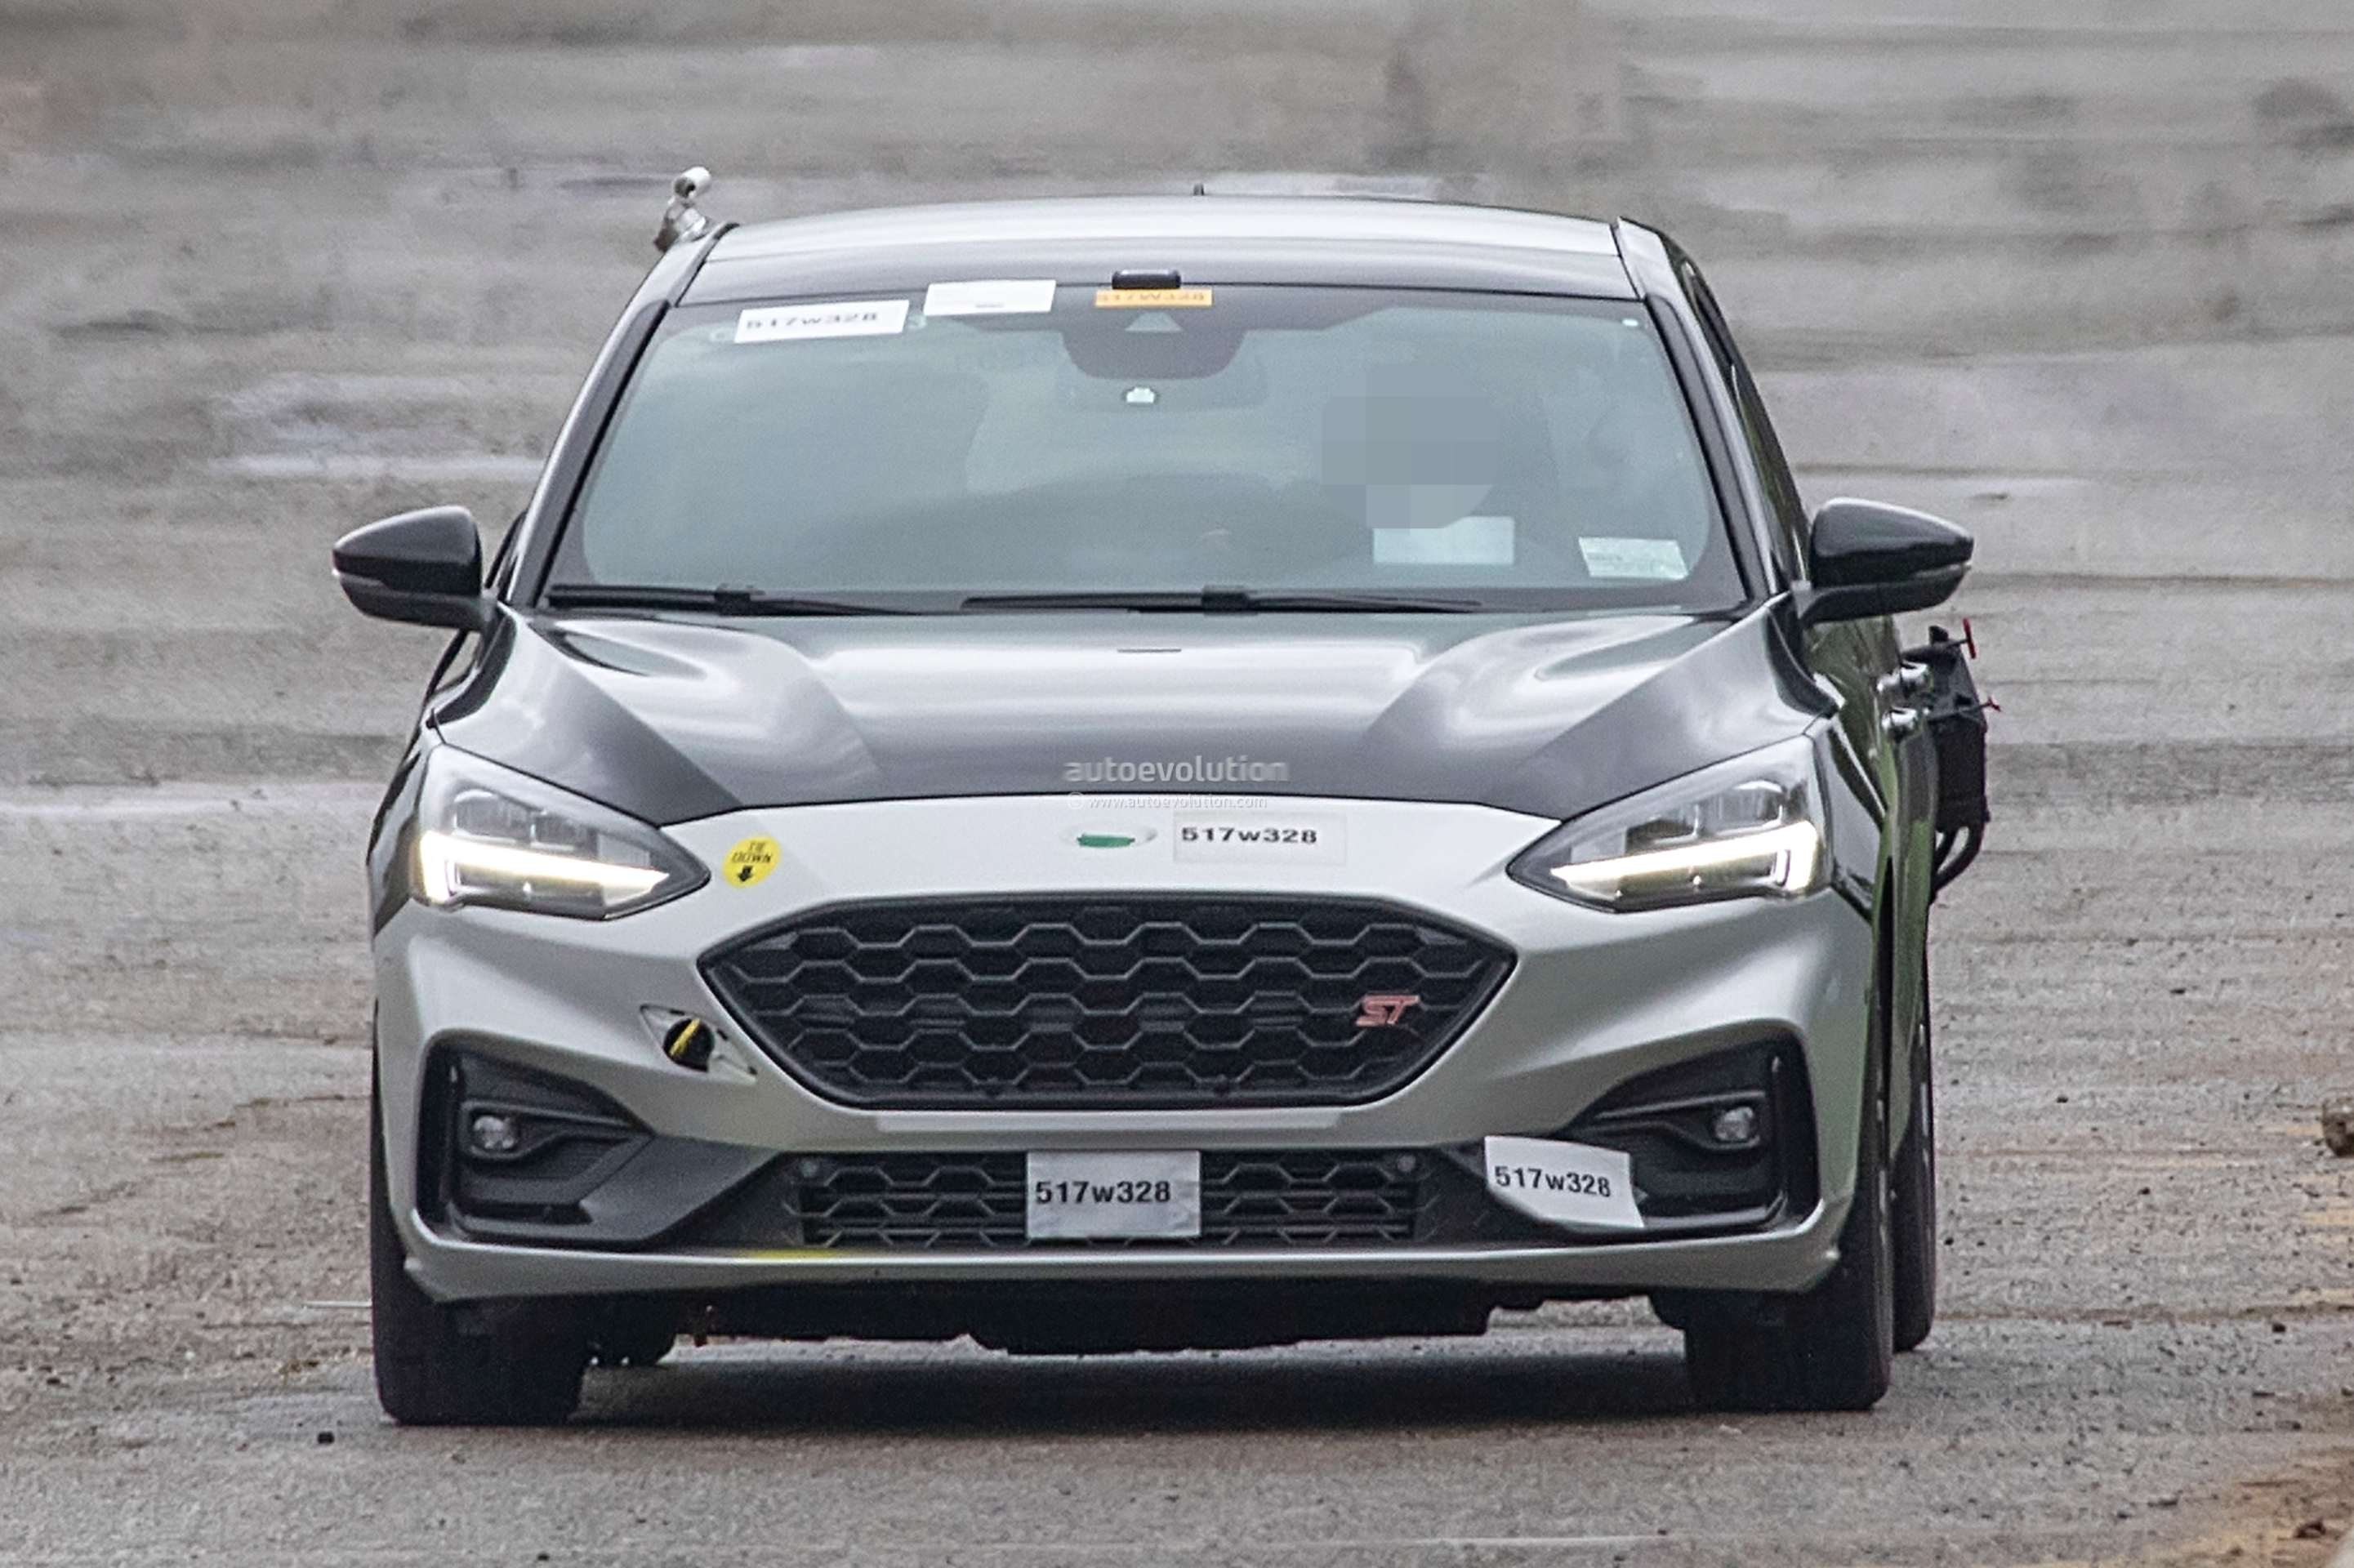 2020 Ford Focus ST Revealed By Naked US Prototype, Has 2